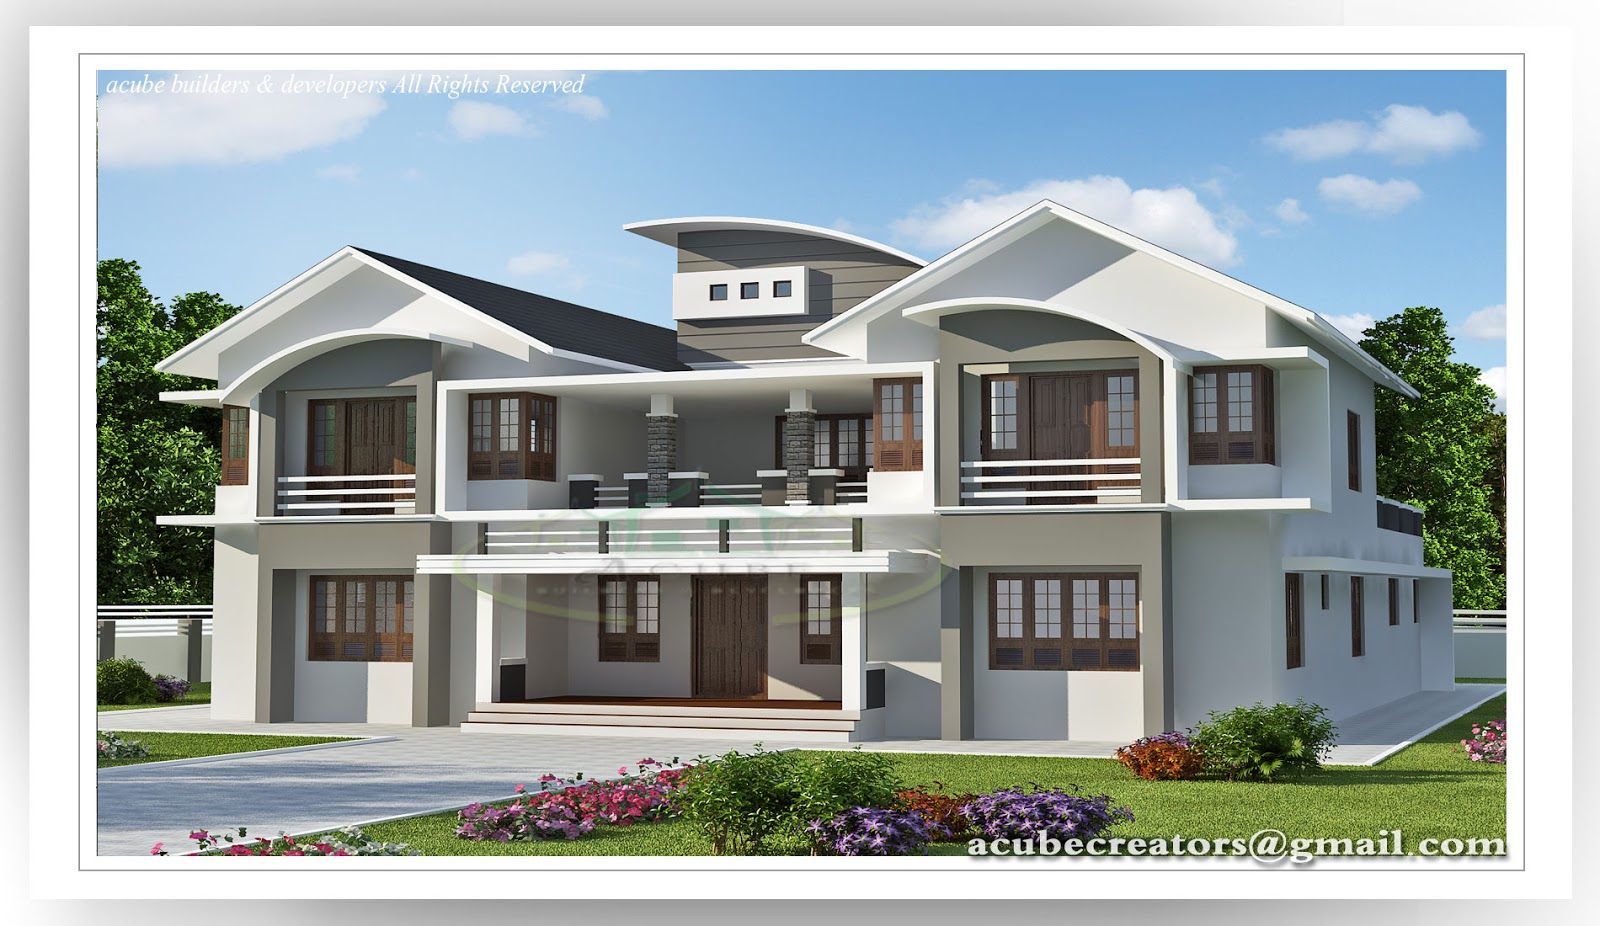 6 Bedroom Luxury Villa Design 5091 Plan 149